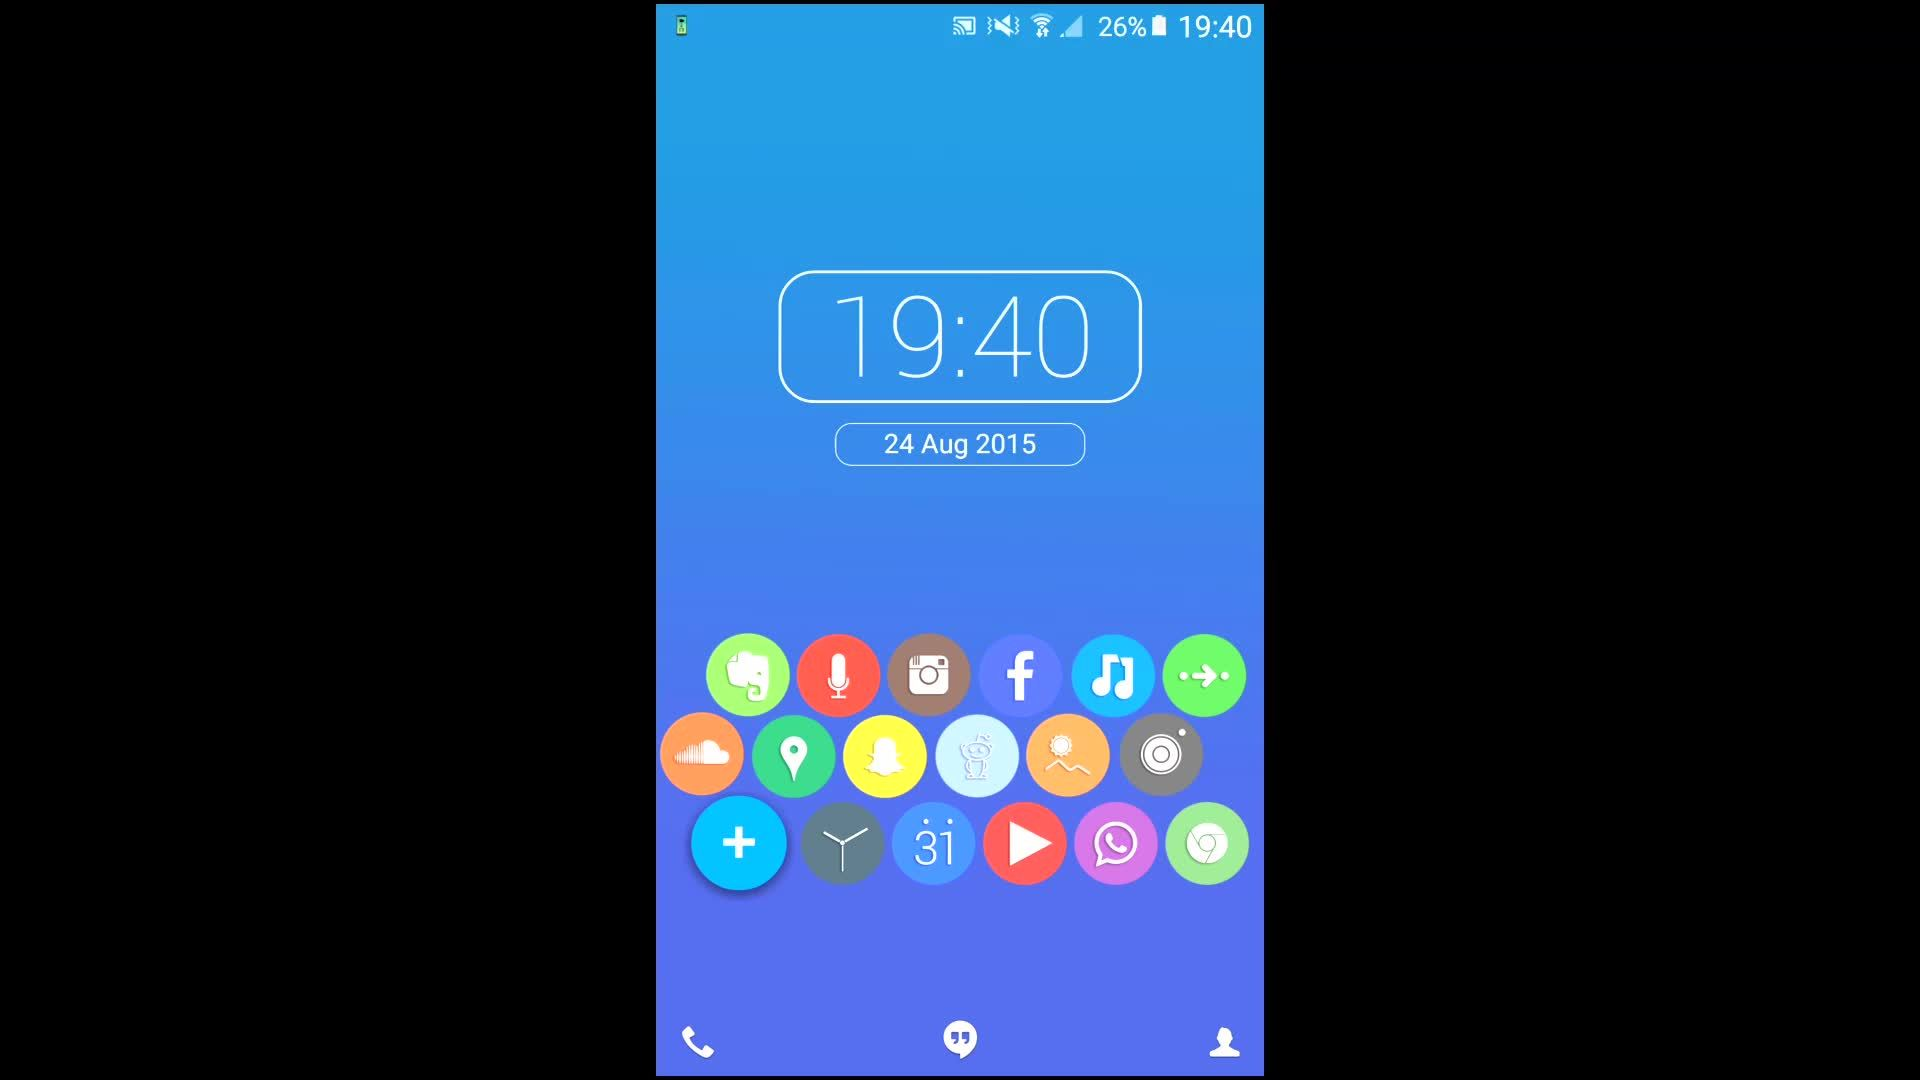 android, Home screen GIFs